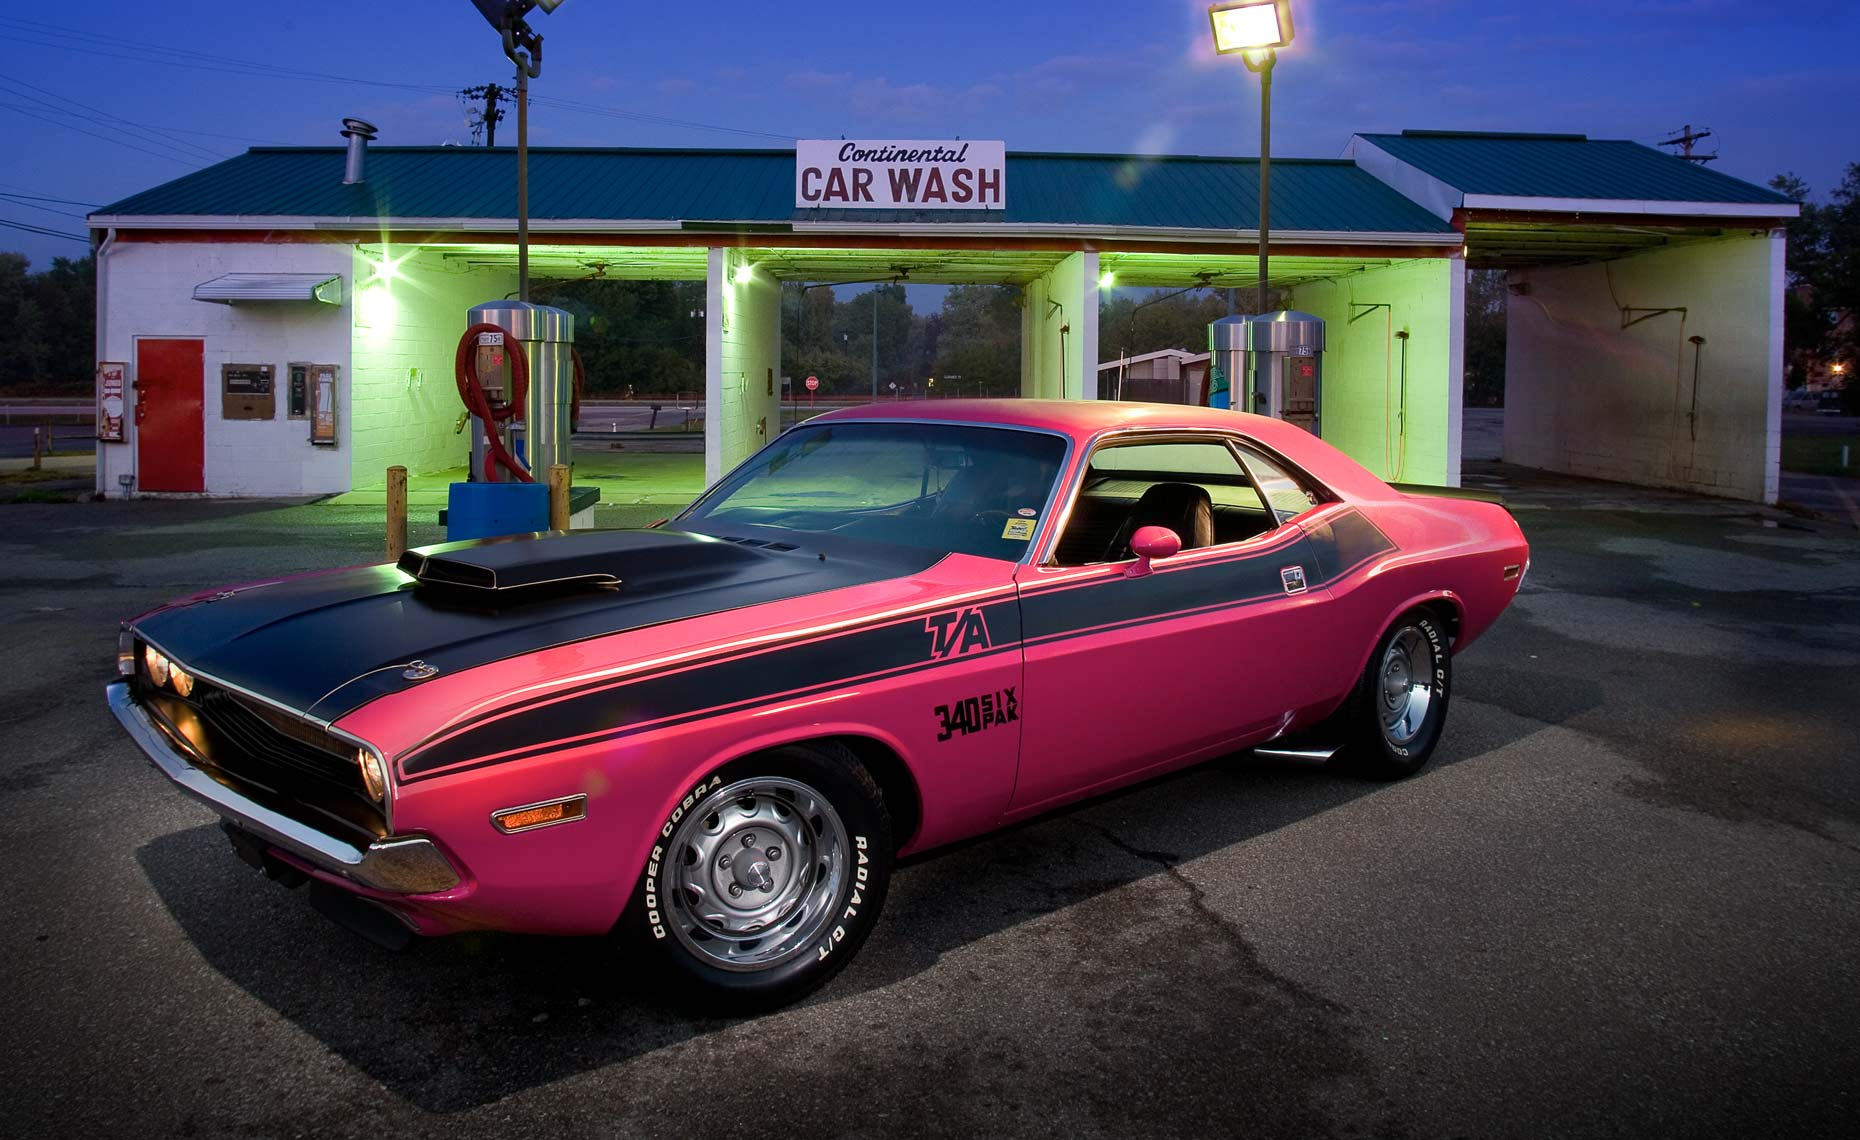 Pink-TA-at-car-wash